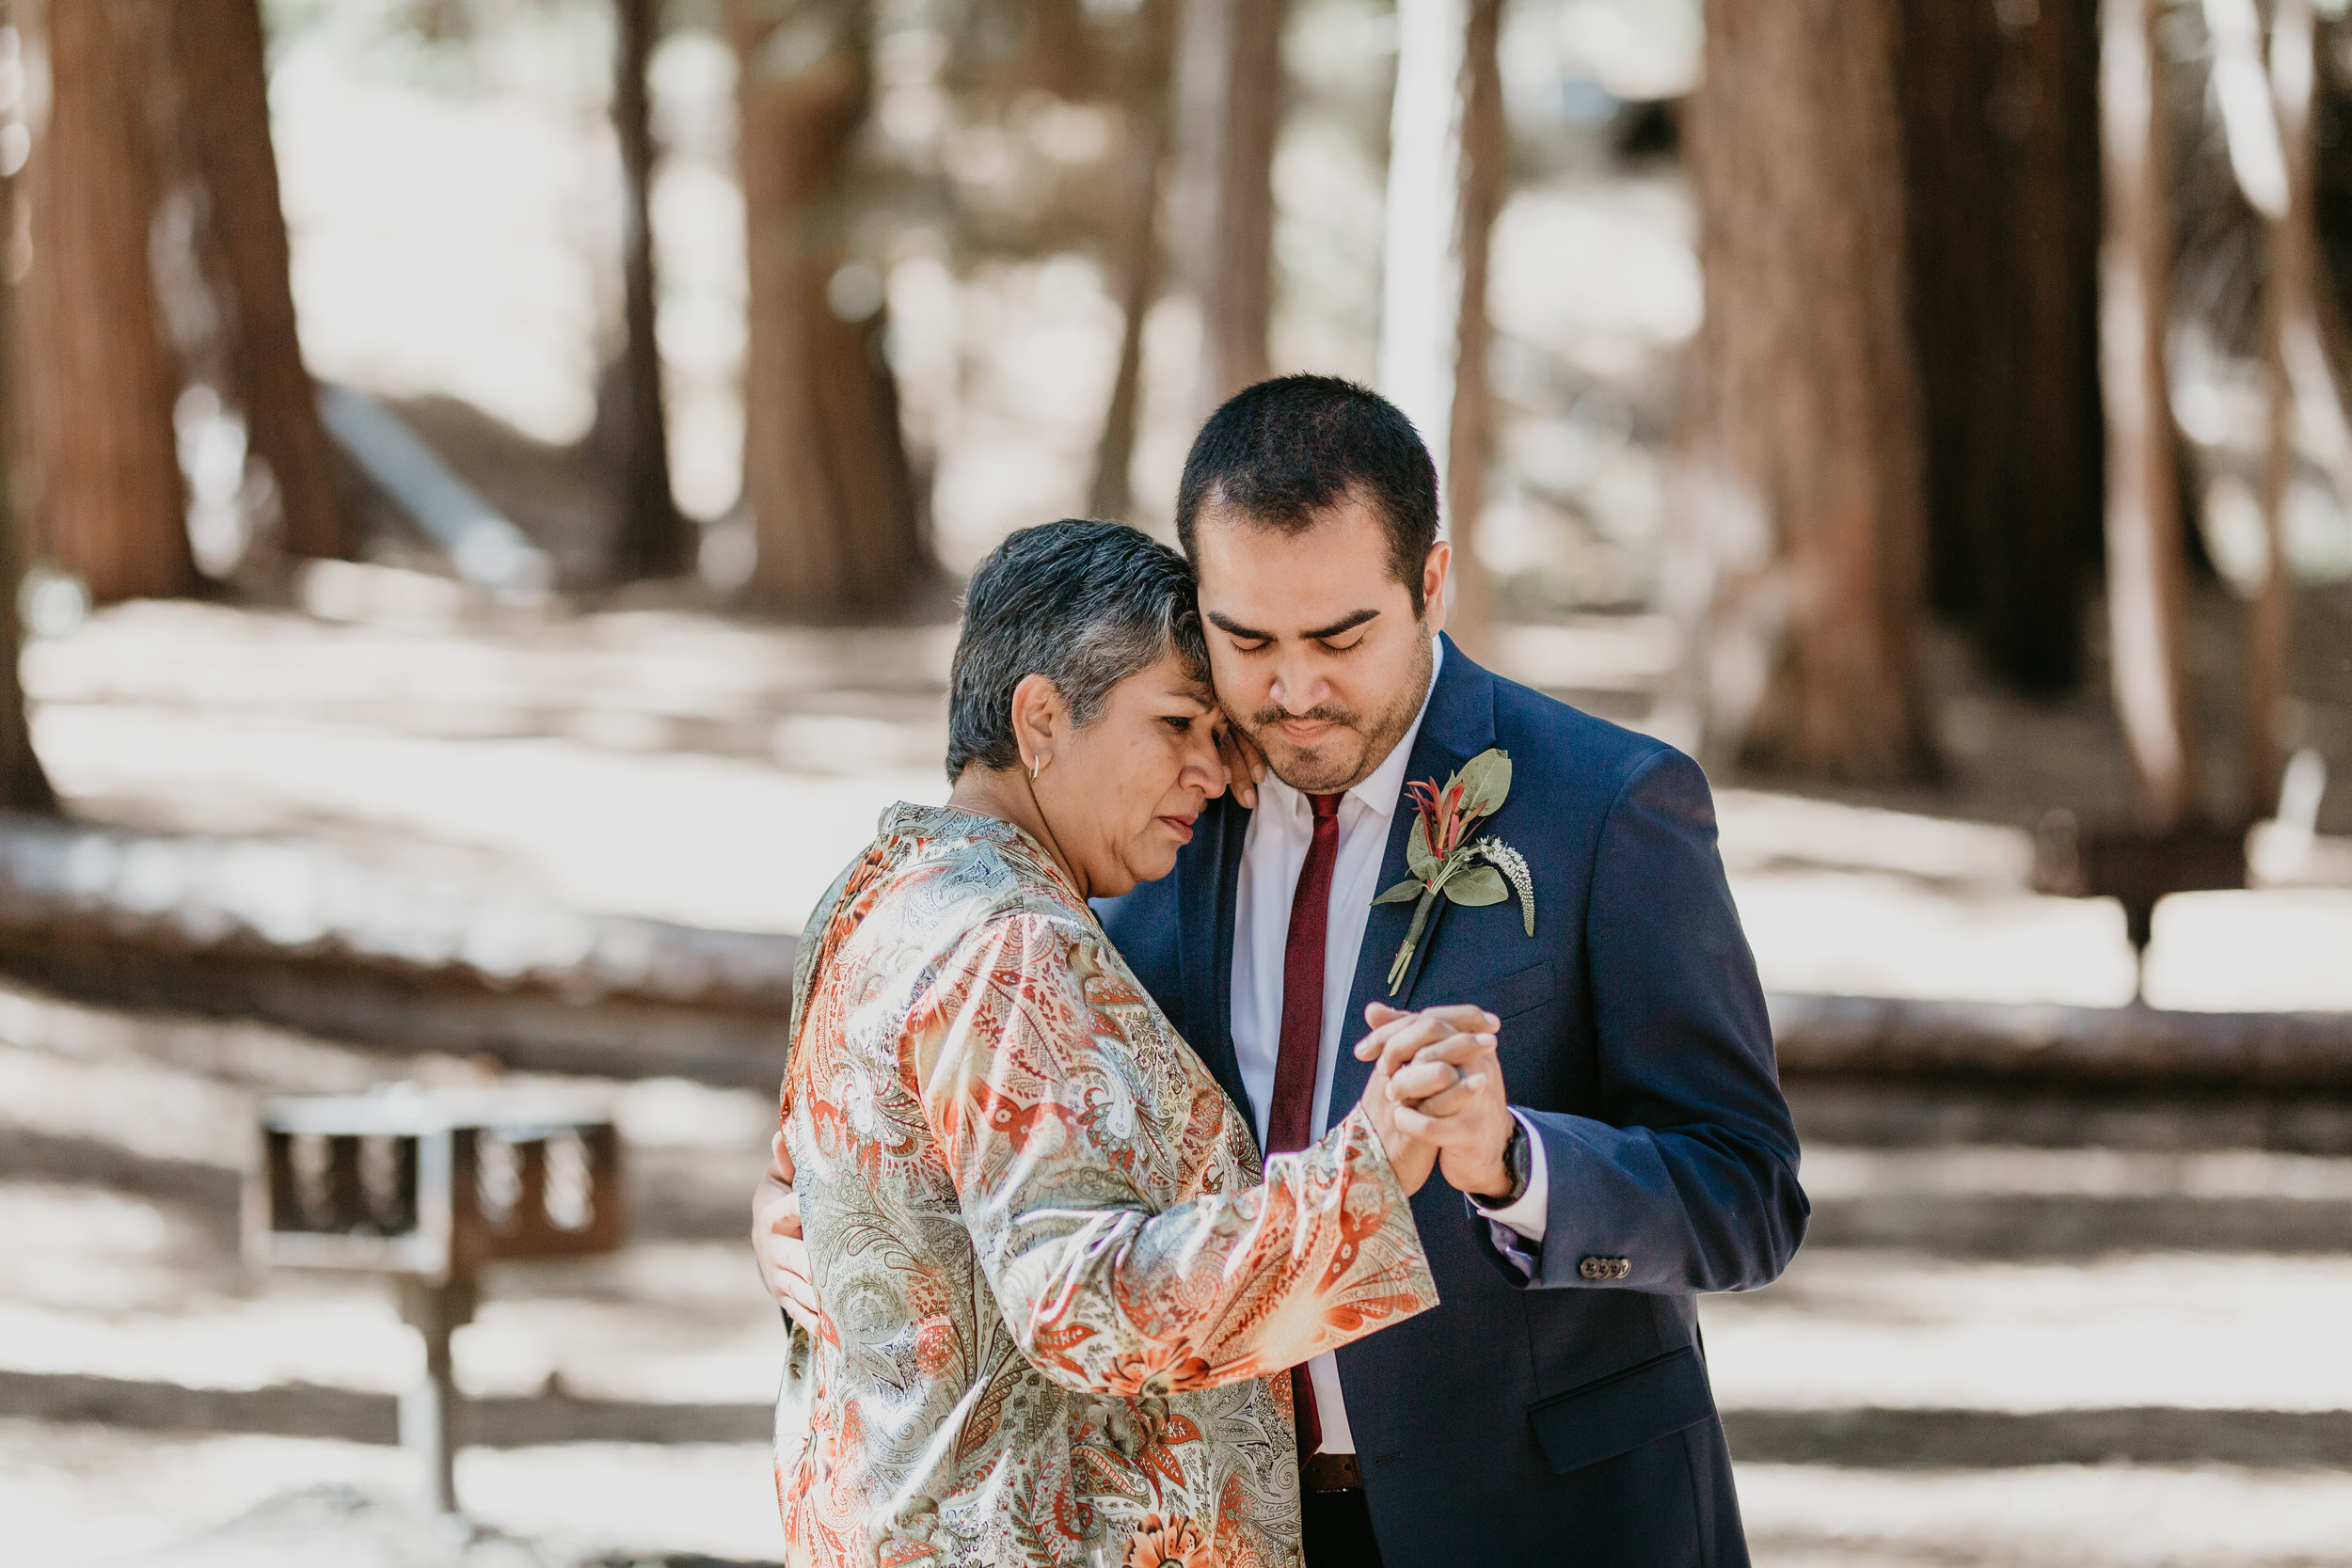 nicole-daacke-photography-intimate-elopement-wedding-yosemite-national-park-california-taft-point-sunset-photos-yosemite-valley-tunnel-view-first-look-sunrise-golden-granite-hiking-adventure-wedding-adventurous-elopement-photographer-84.jpg